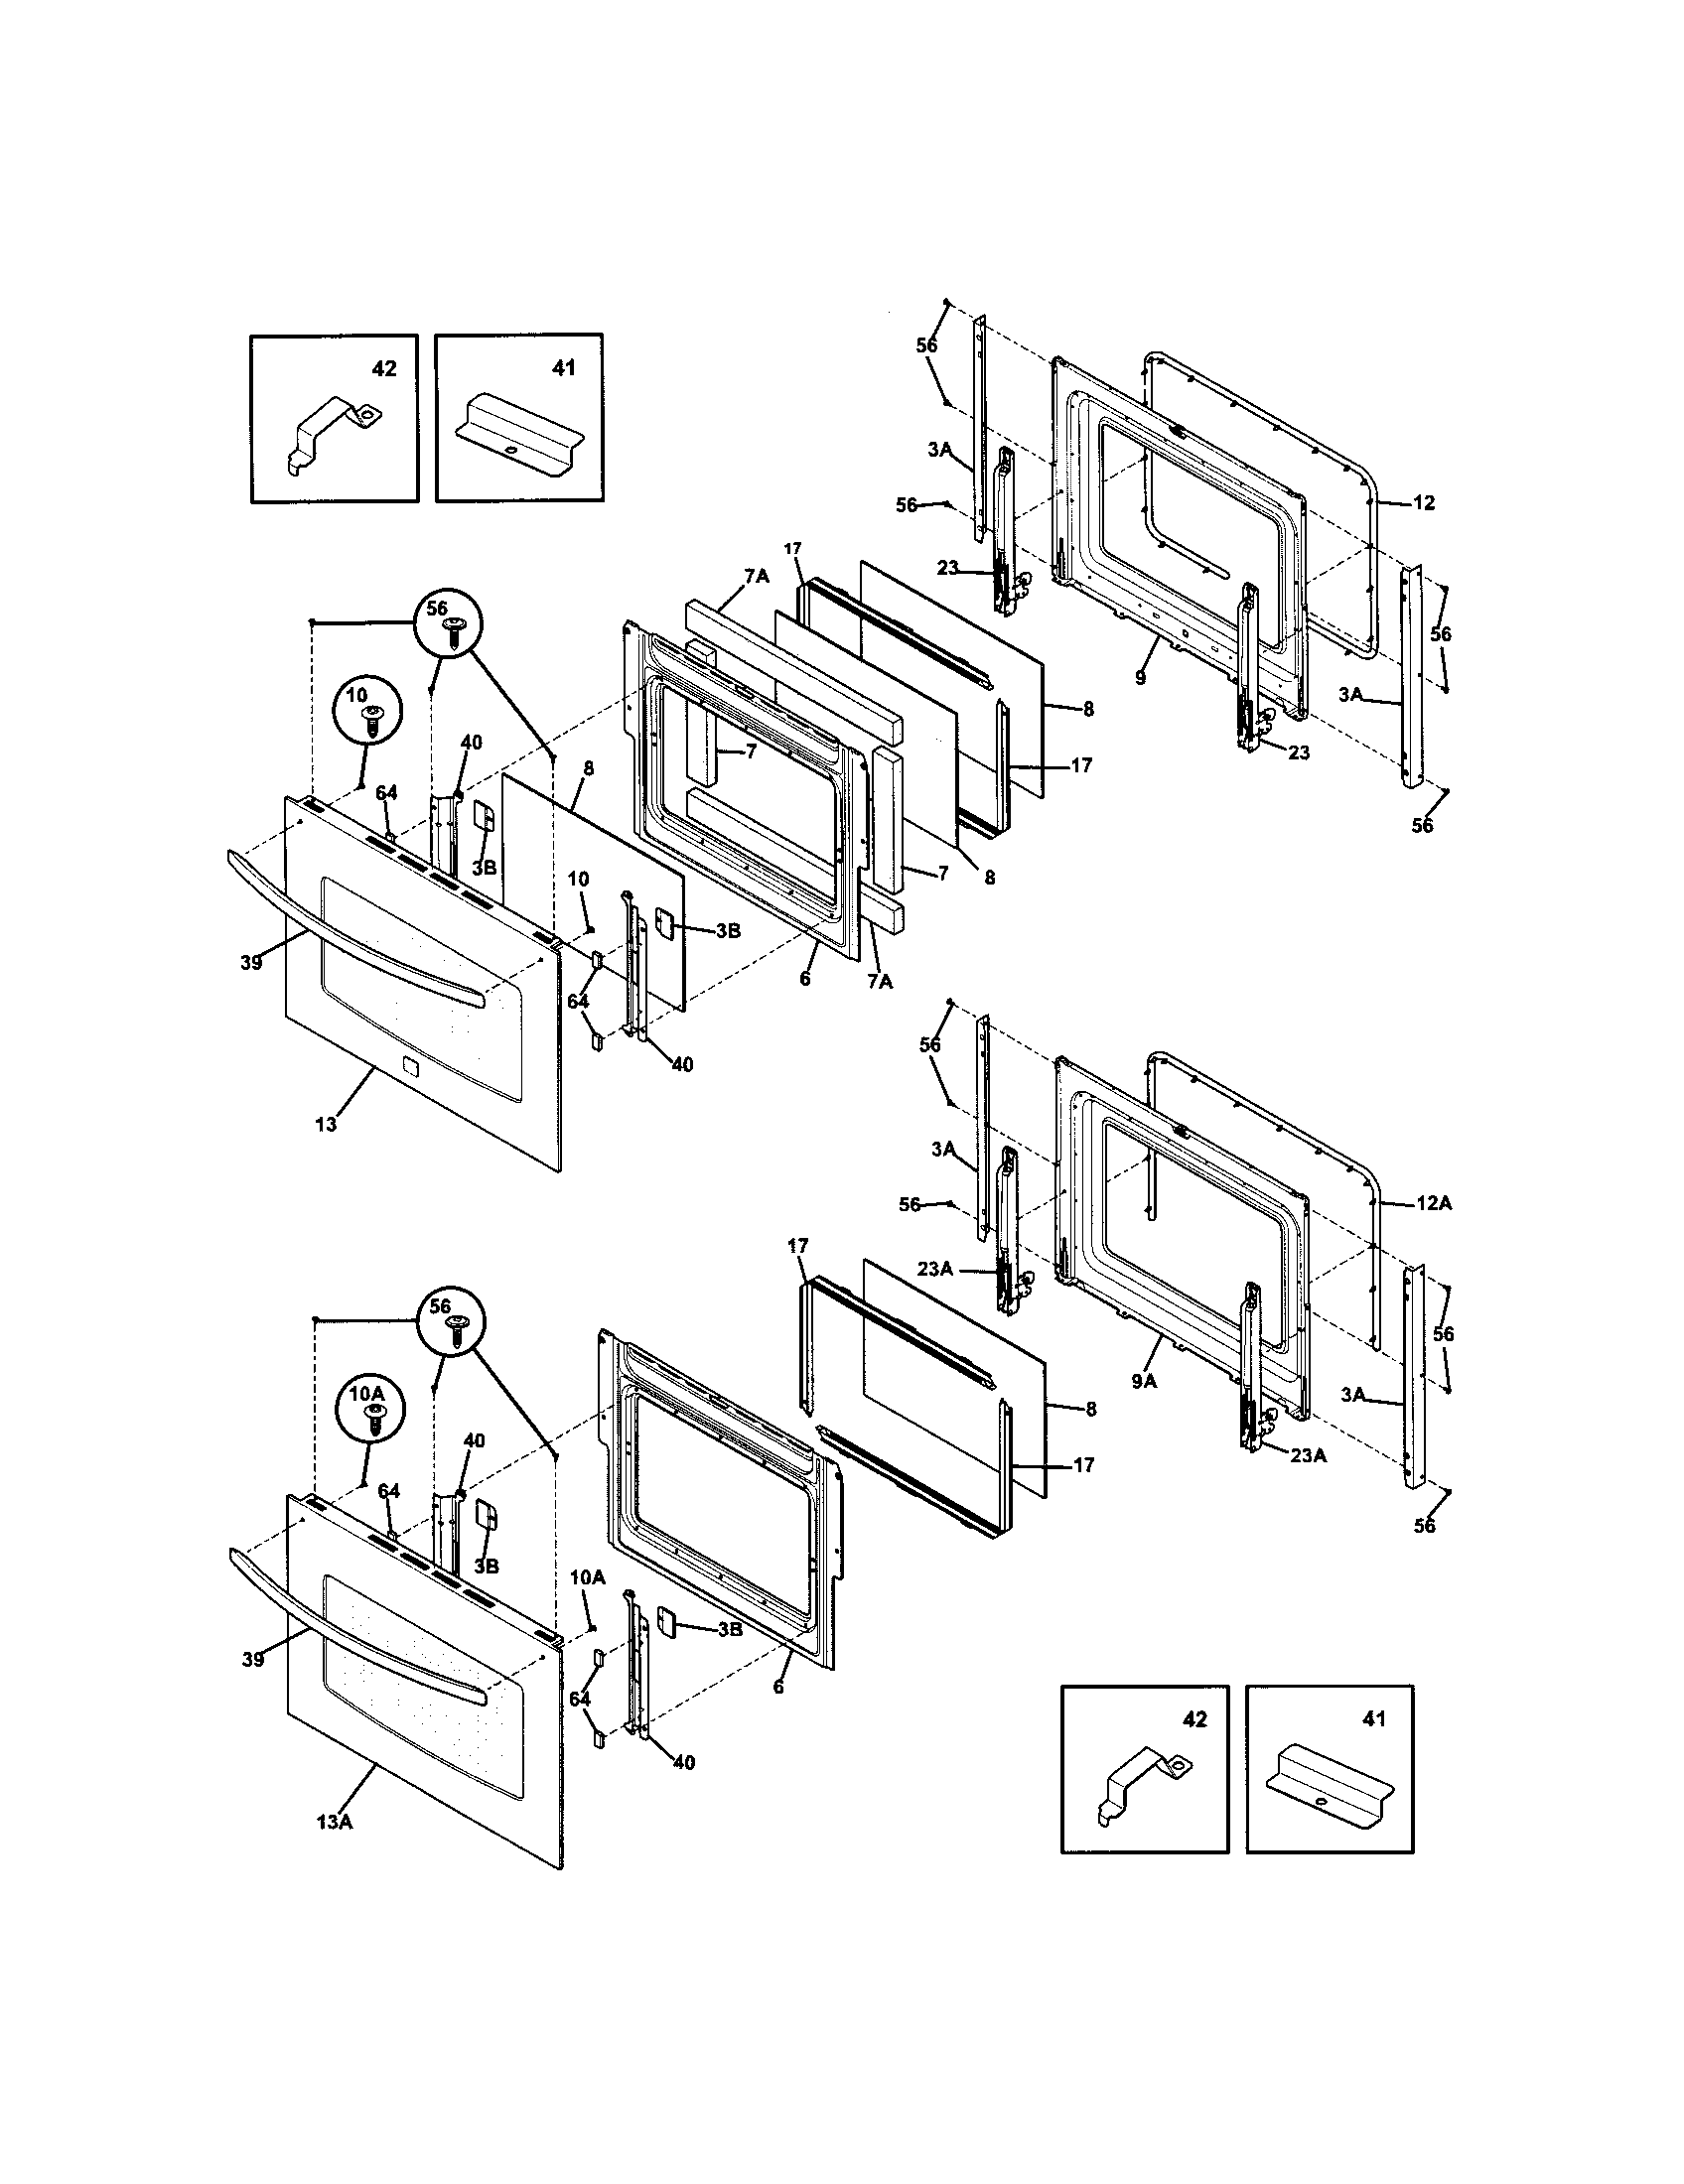 hight resolution of kenmore wall oven wiring diagram on kenmore double oven wiring